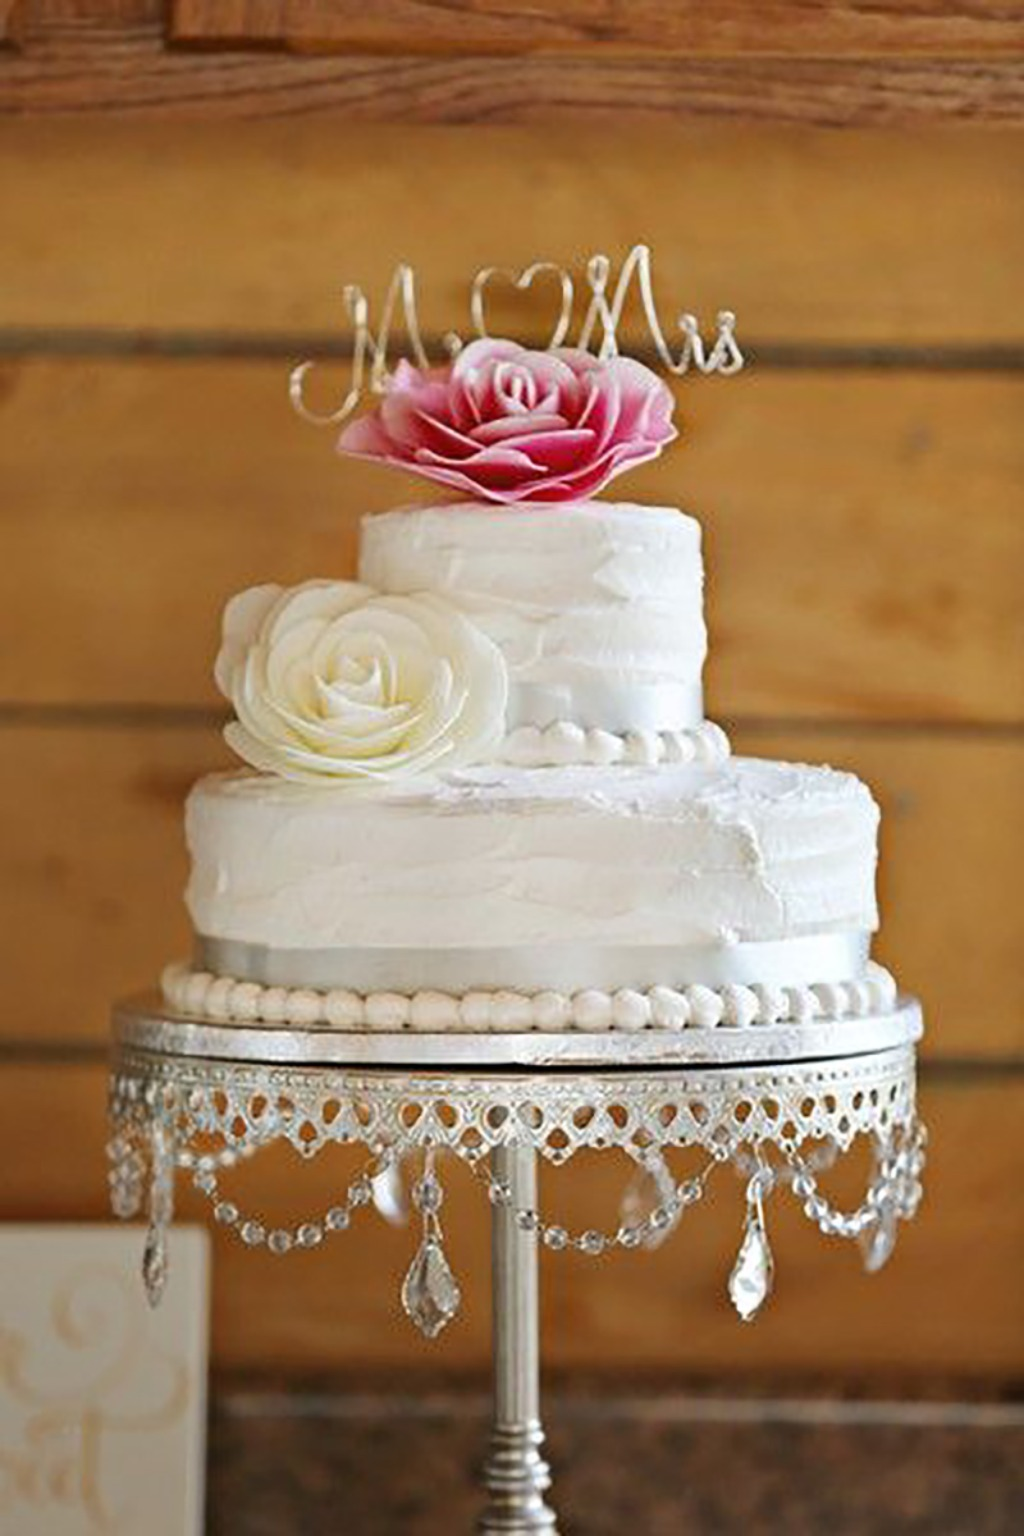 Simple White Wedding Cake Details on Antique Silver Chandelier Cake Stand created by Opulent Treasures {Brittany Bailey Photography